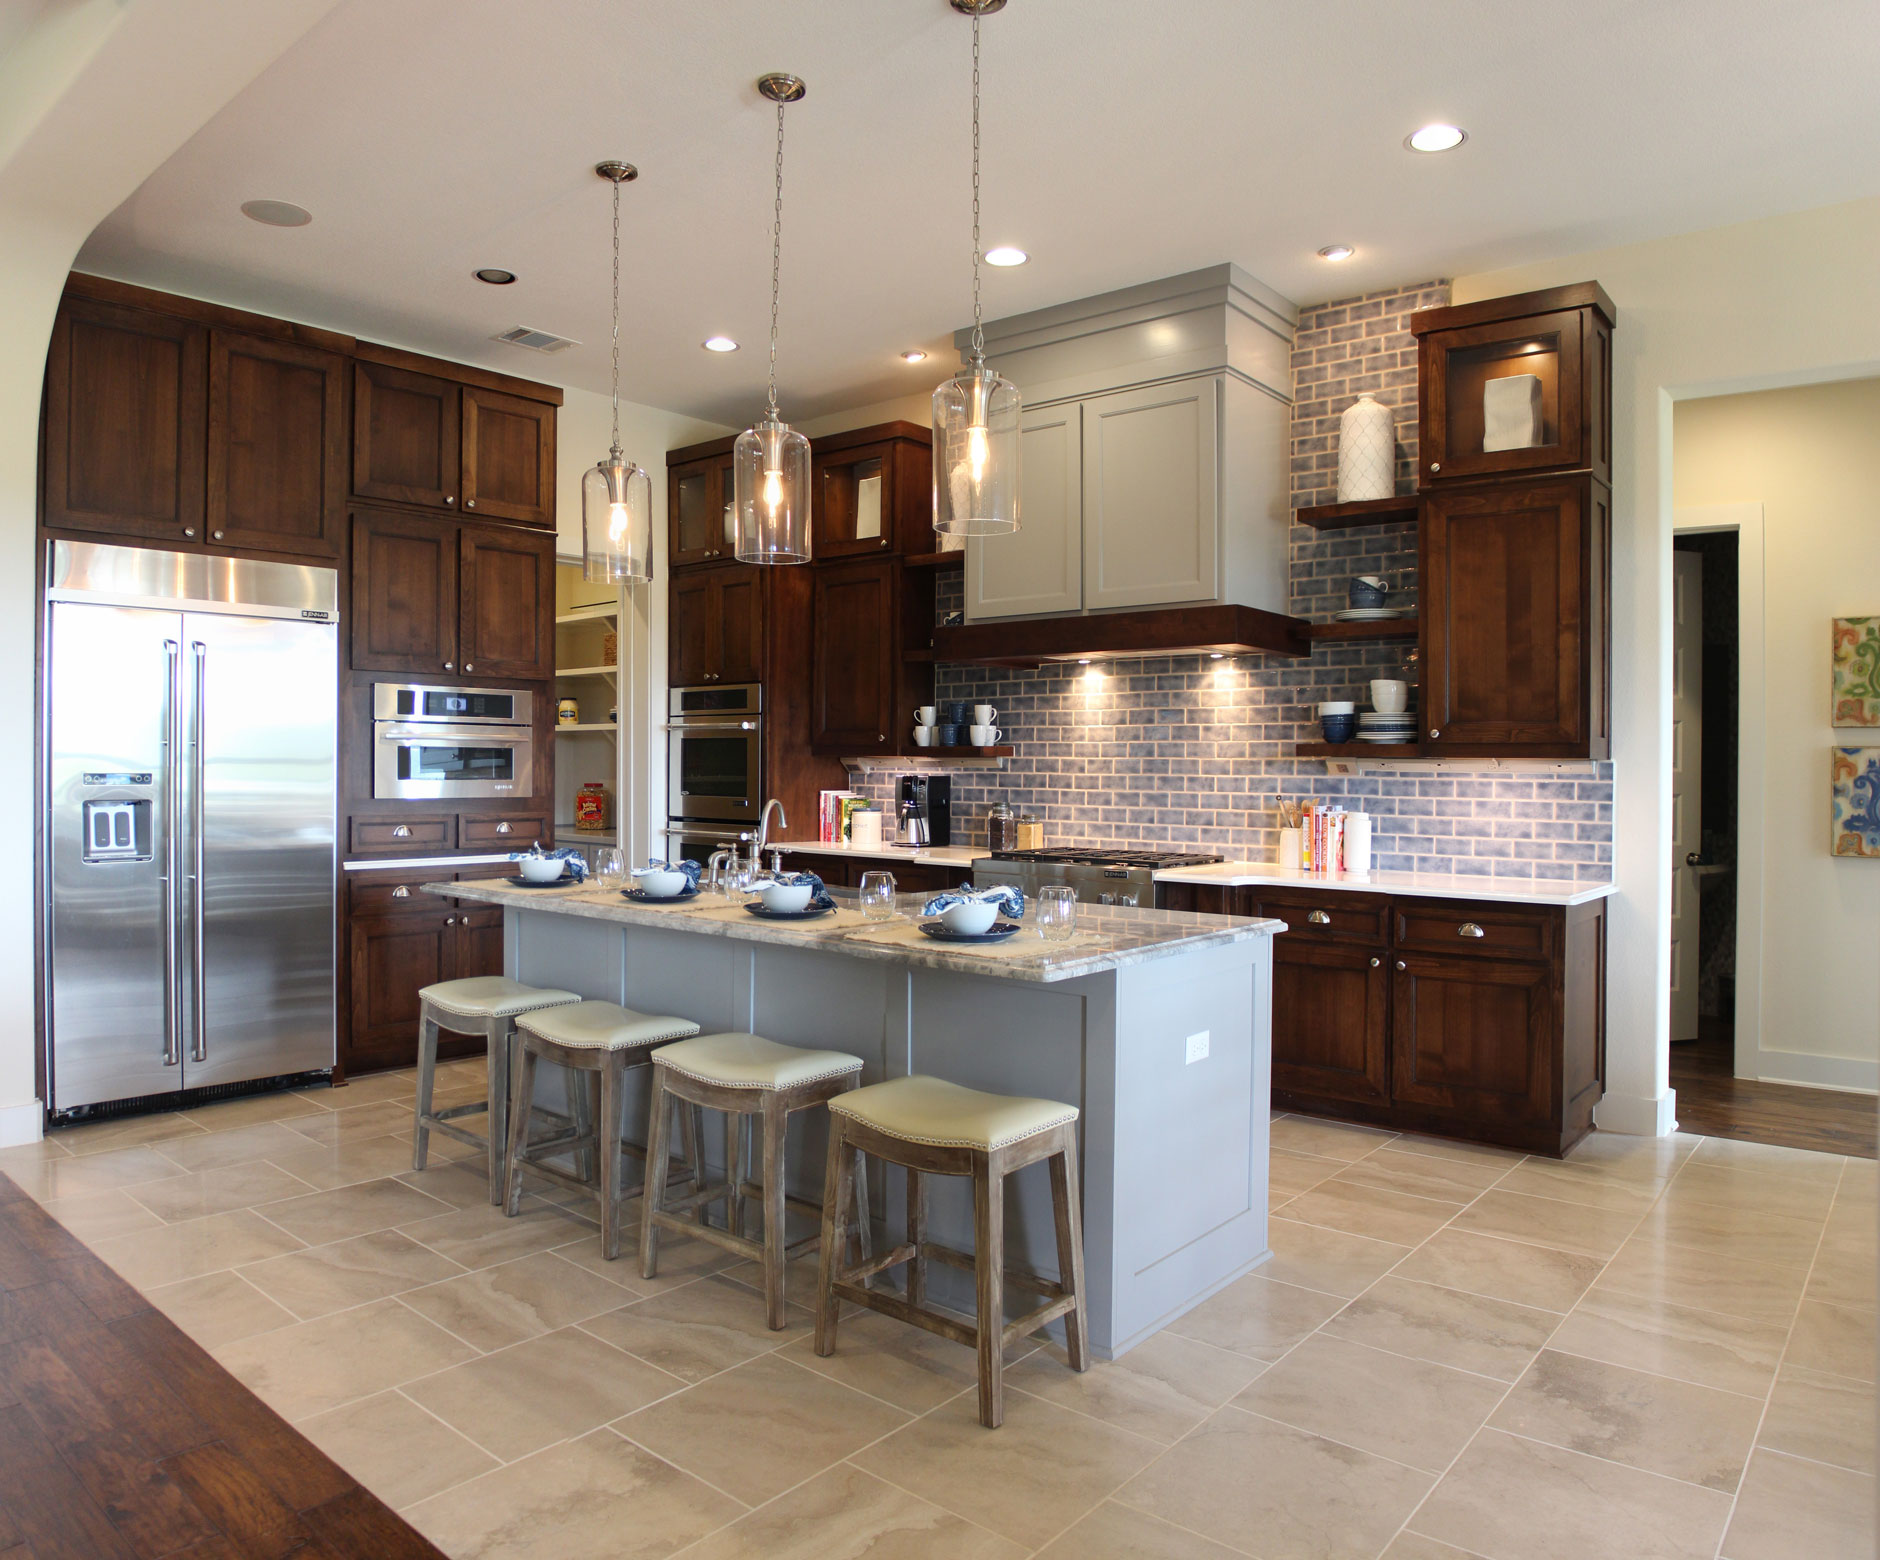 choose flooring compliments cabinet color ash kitchen cabinets Burrows Cabinets kitchen cabinets in stained perimeter cabinets and gray island Craftsman range hood and